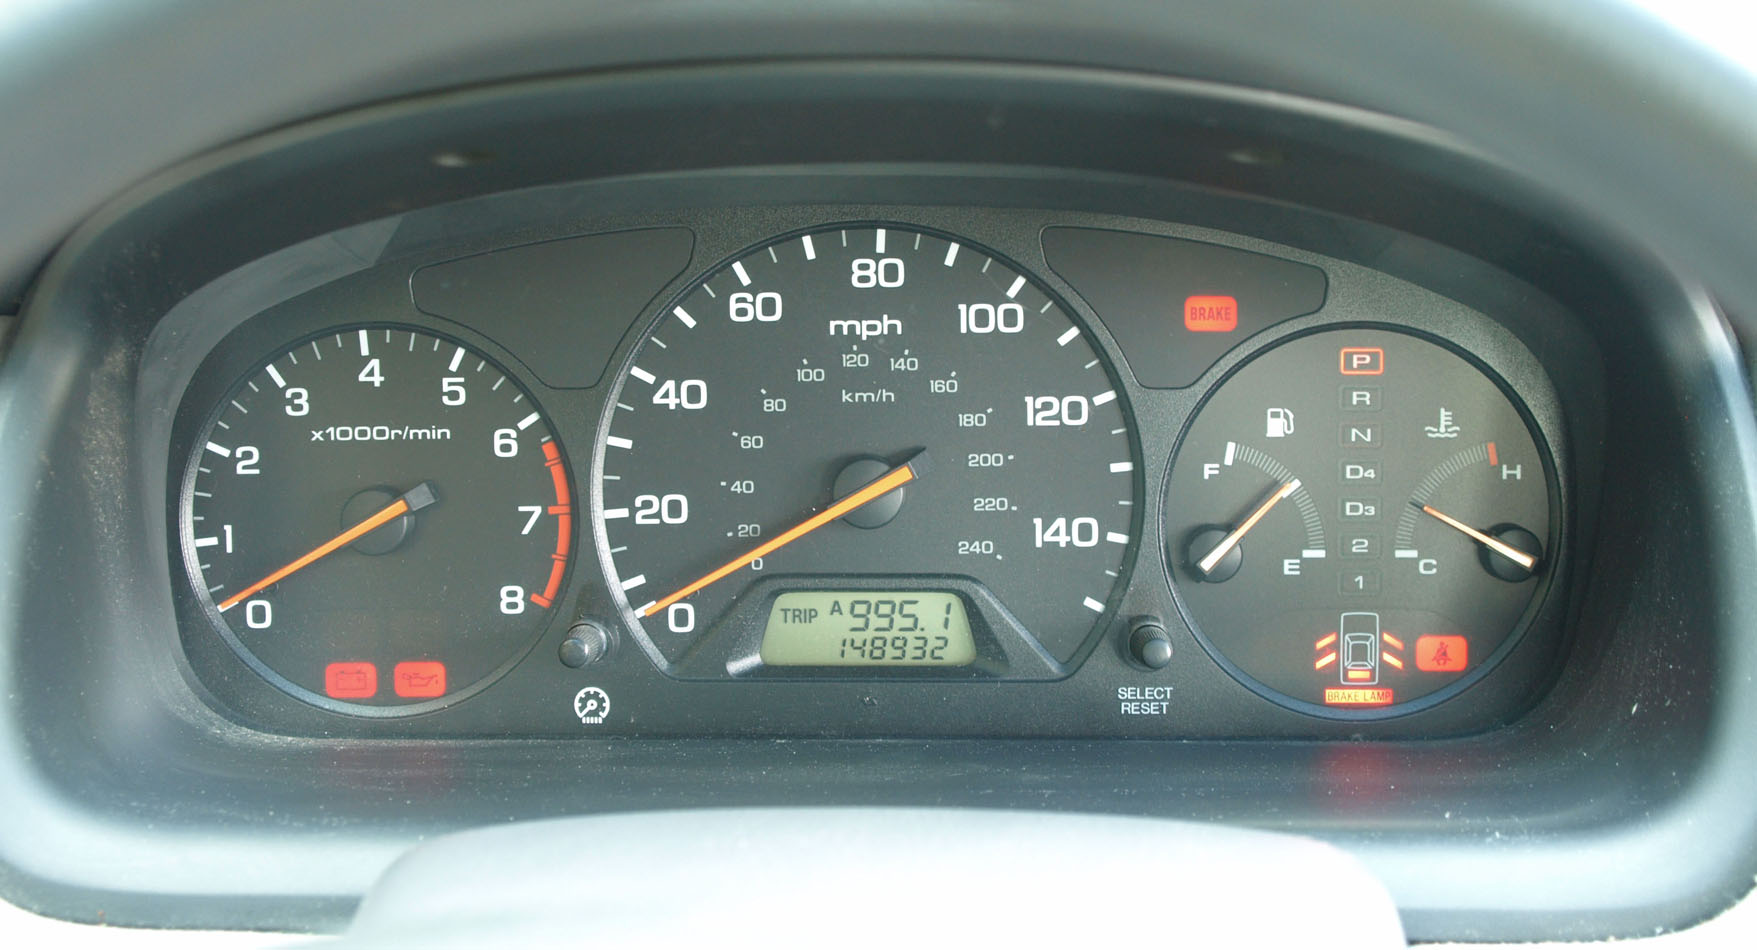 2001 honda accord dashboard warning autos weblog